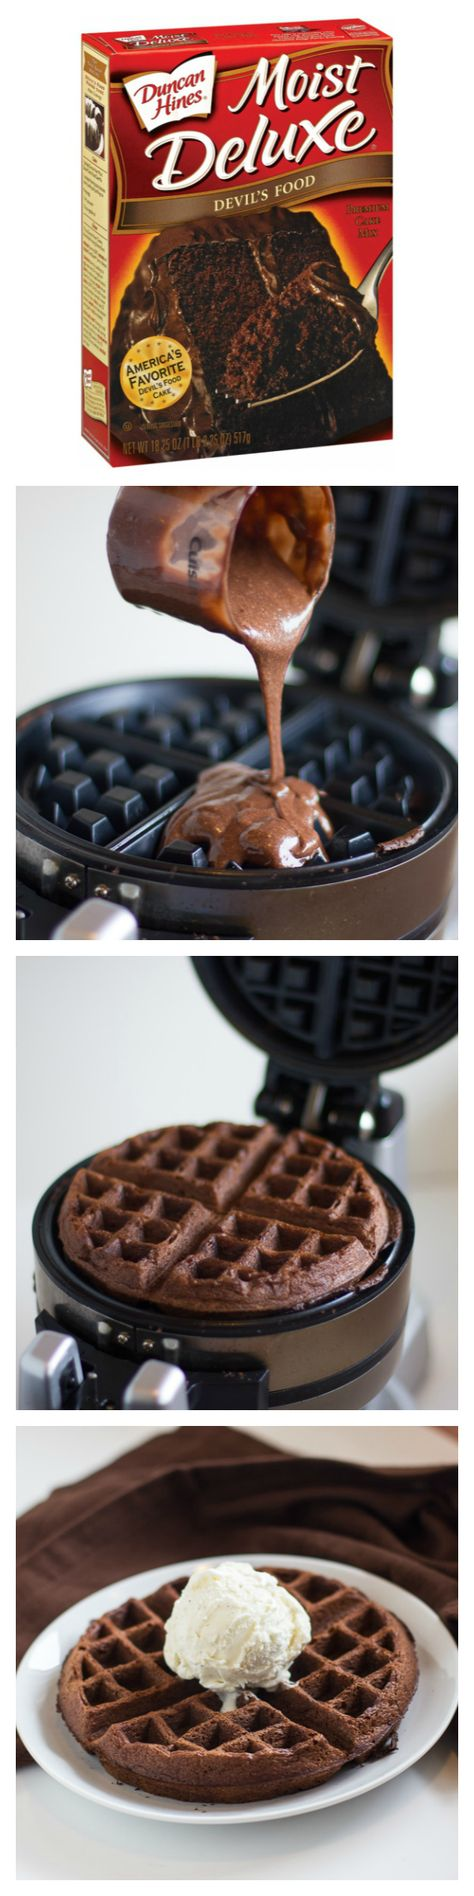 Cake Mix Waffles - make the cake batter as instructed on the box then make them just like you do waffles. Top with your favorite ice cream! ❤